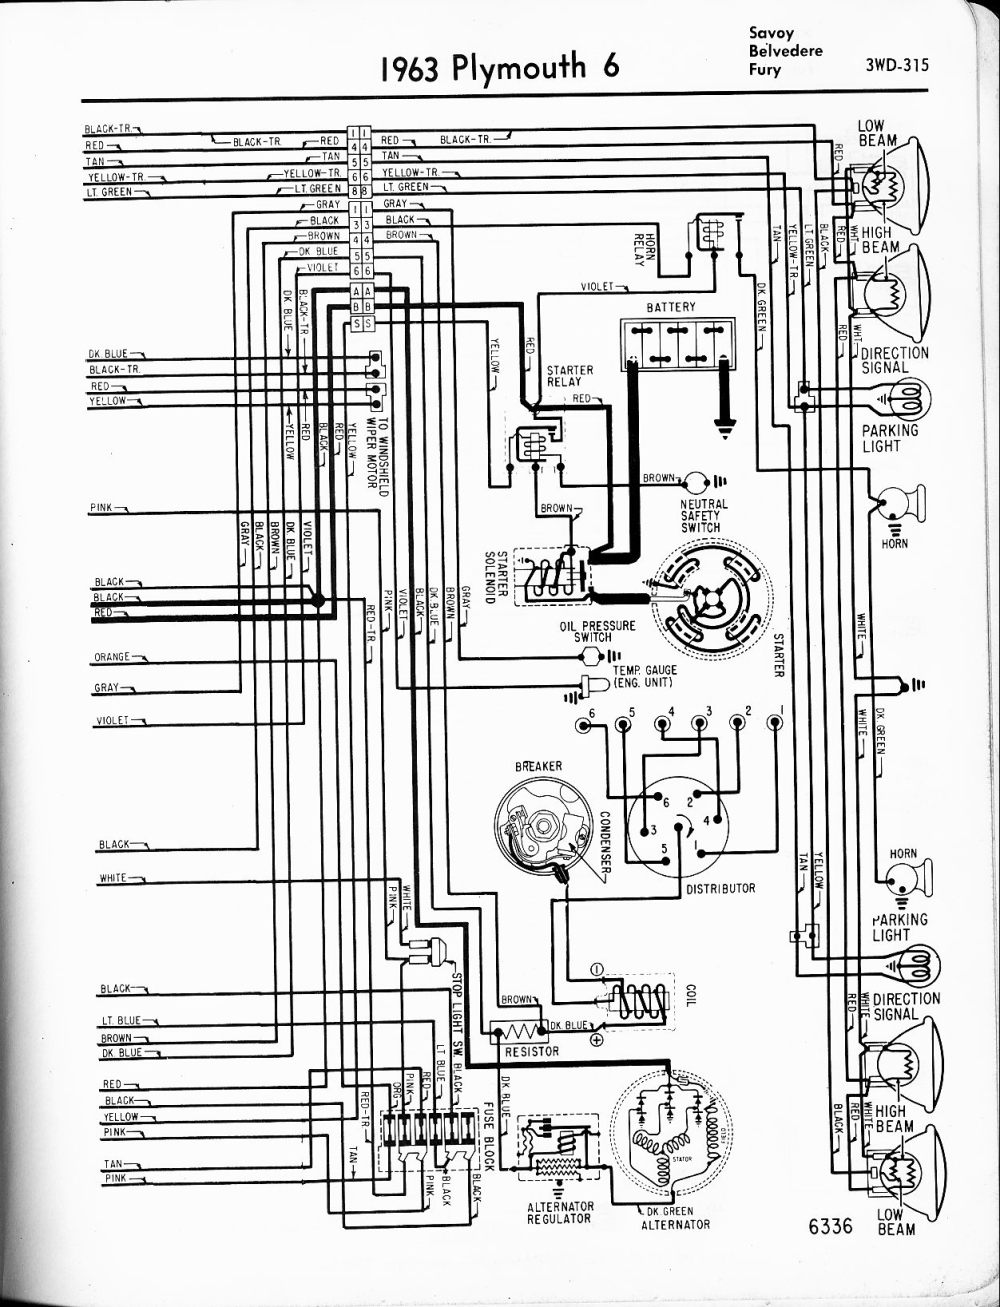 medium resolution of 1956 1965 plymouth wiring the old car manual project wiring diagrams of 1961 plymouth 6 savoy belvedere and fury